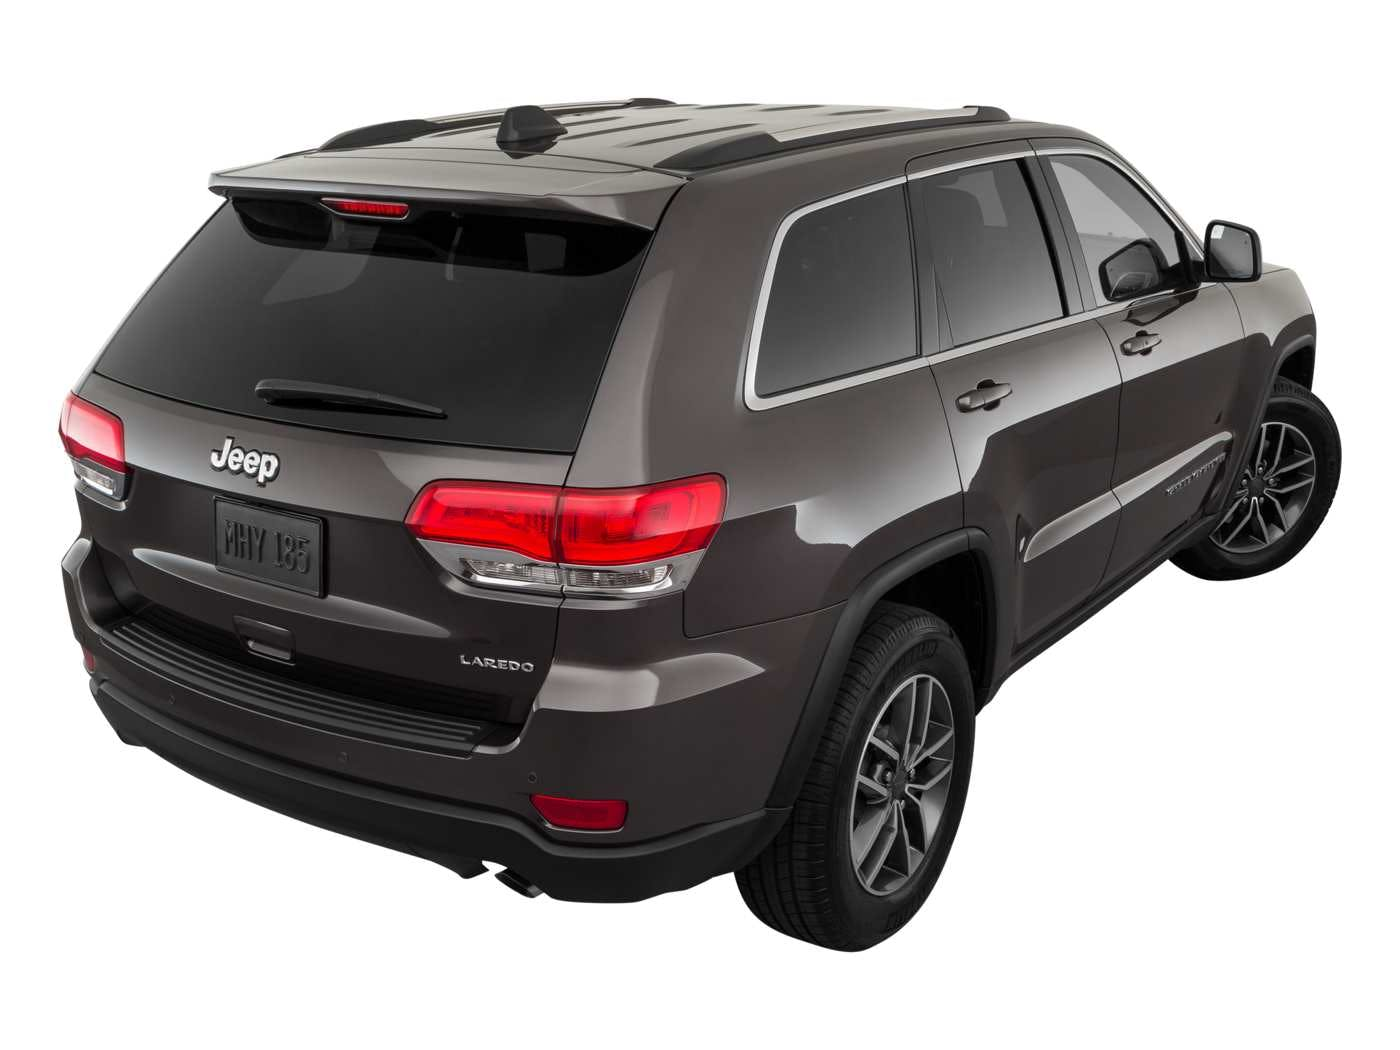 2019 Jeep Grand Cherokee Exterior Rear 3 4 Angle View